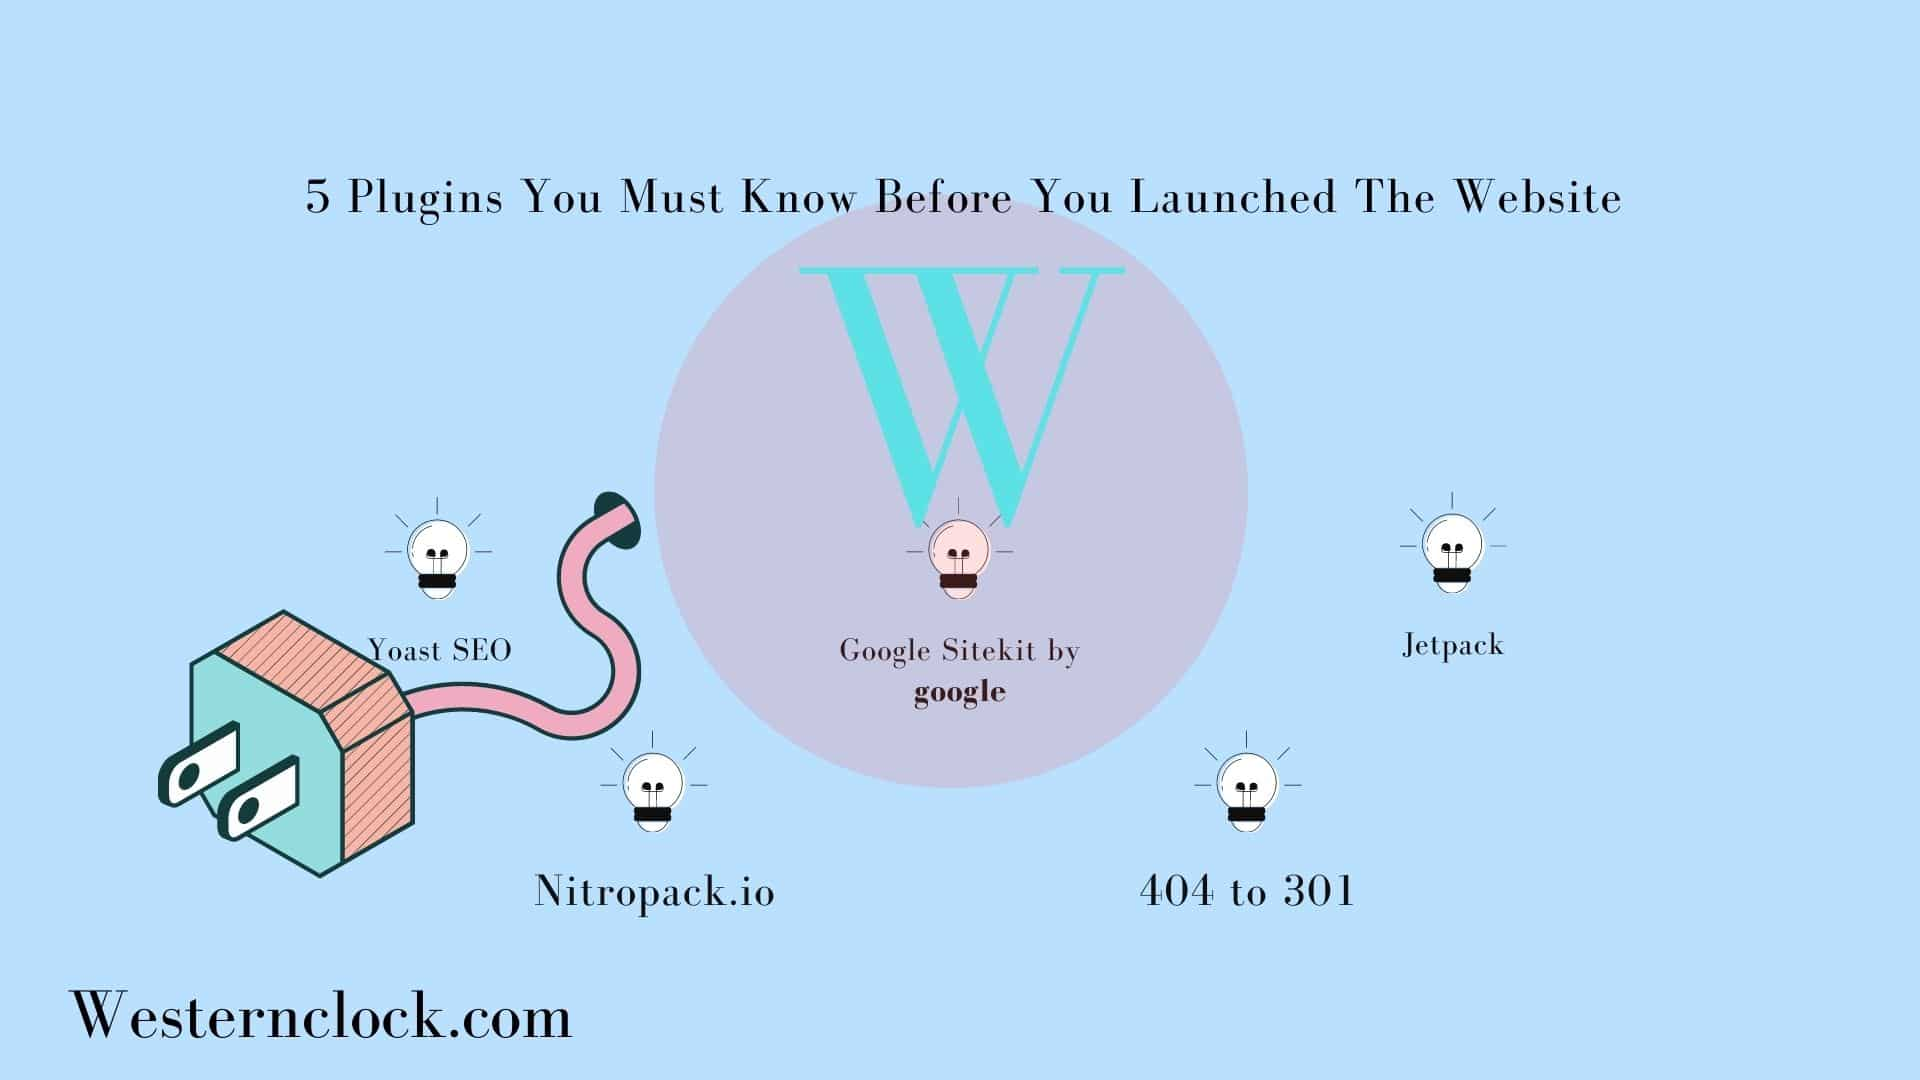 5 Plugins You Must Know Before You Launched The Website